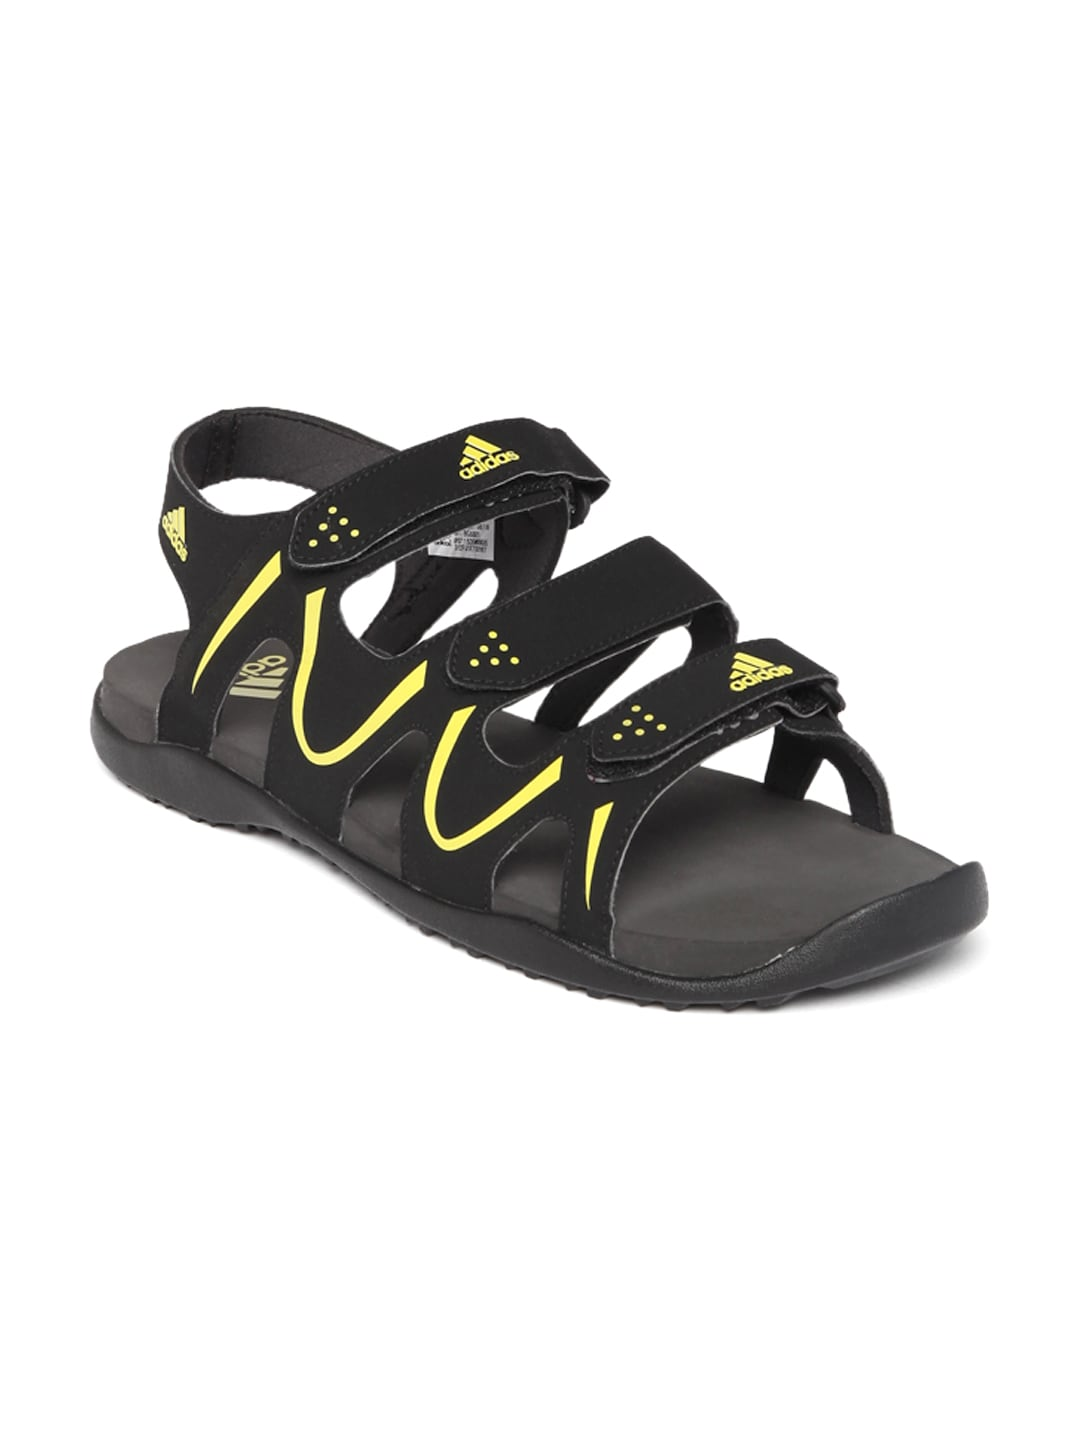 073e77399 Span Adidas Sports Sandal - Buy Span Adidas Sports Sandal online in India